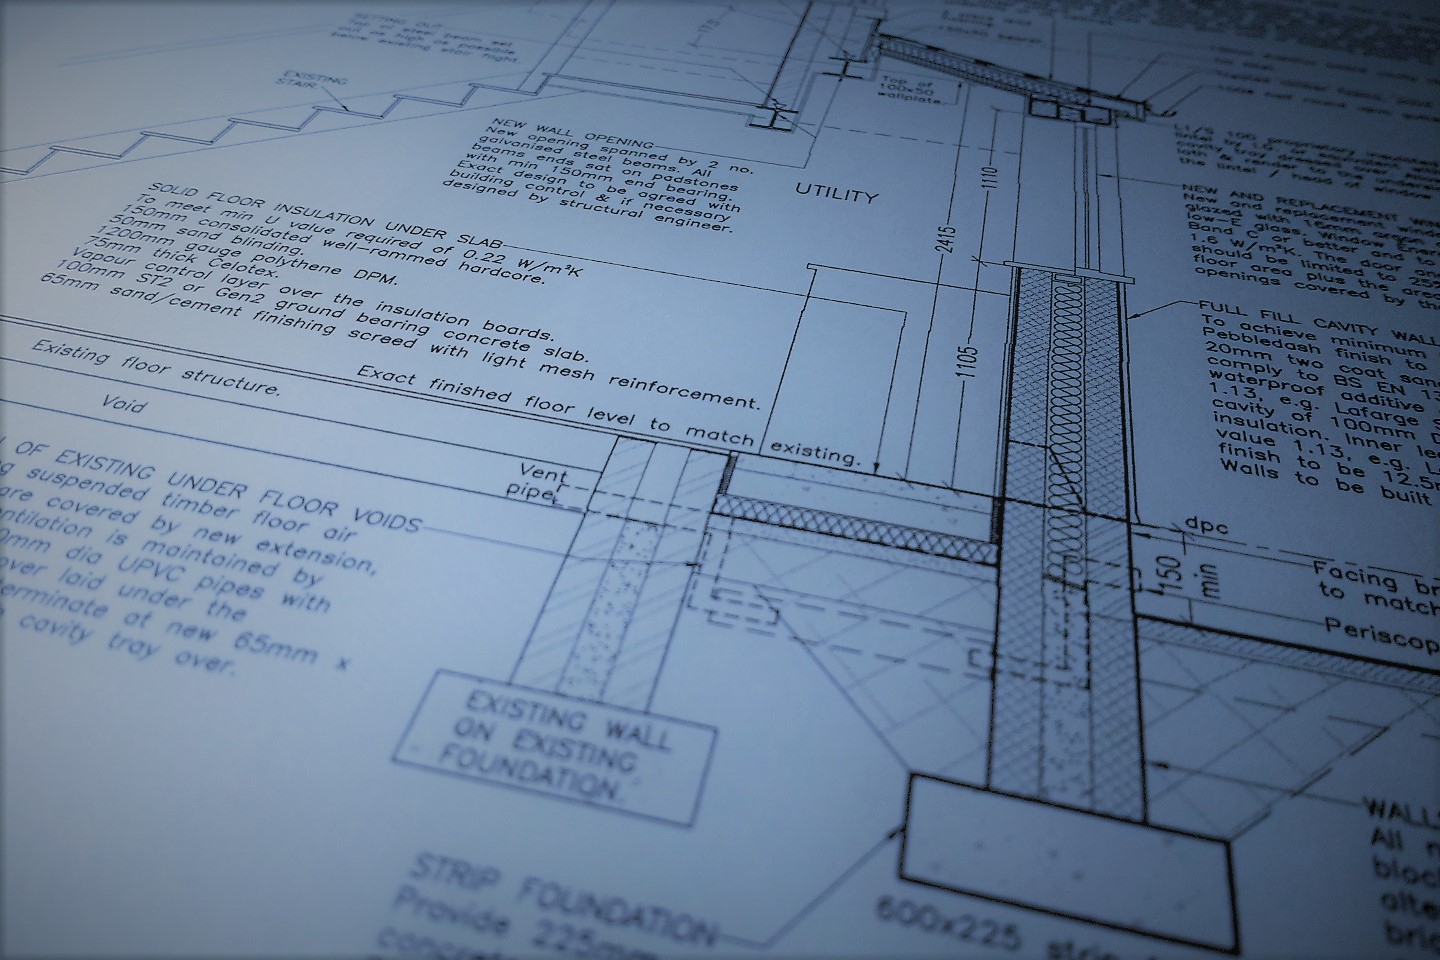 kitchen utility extension full plans